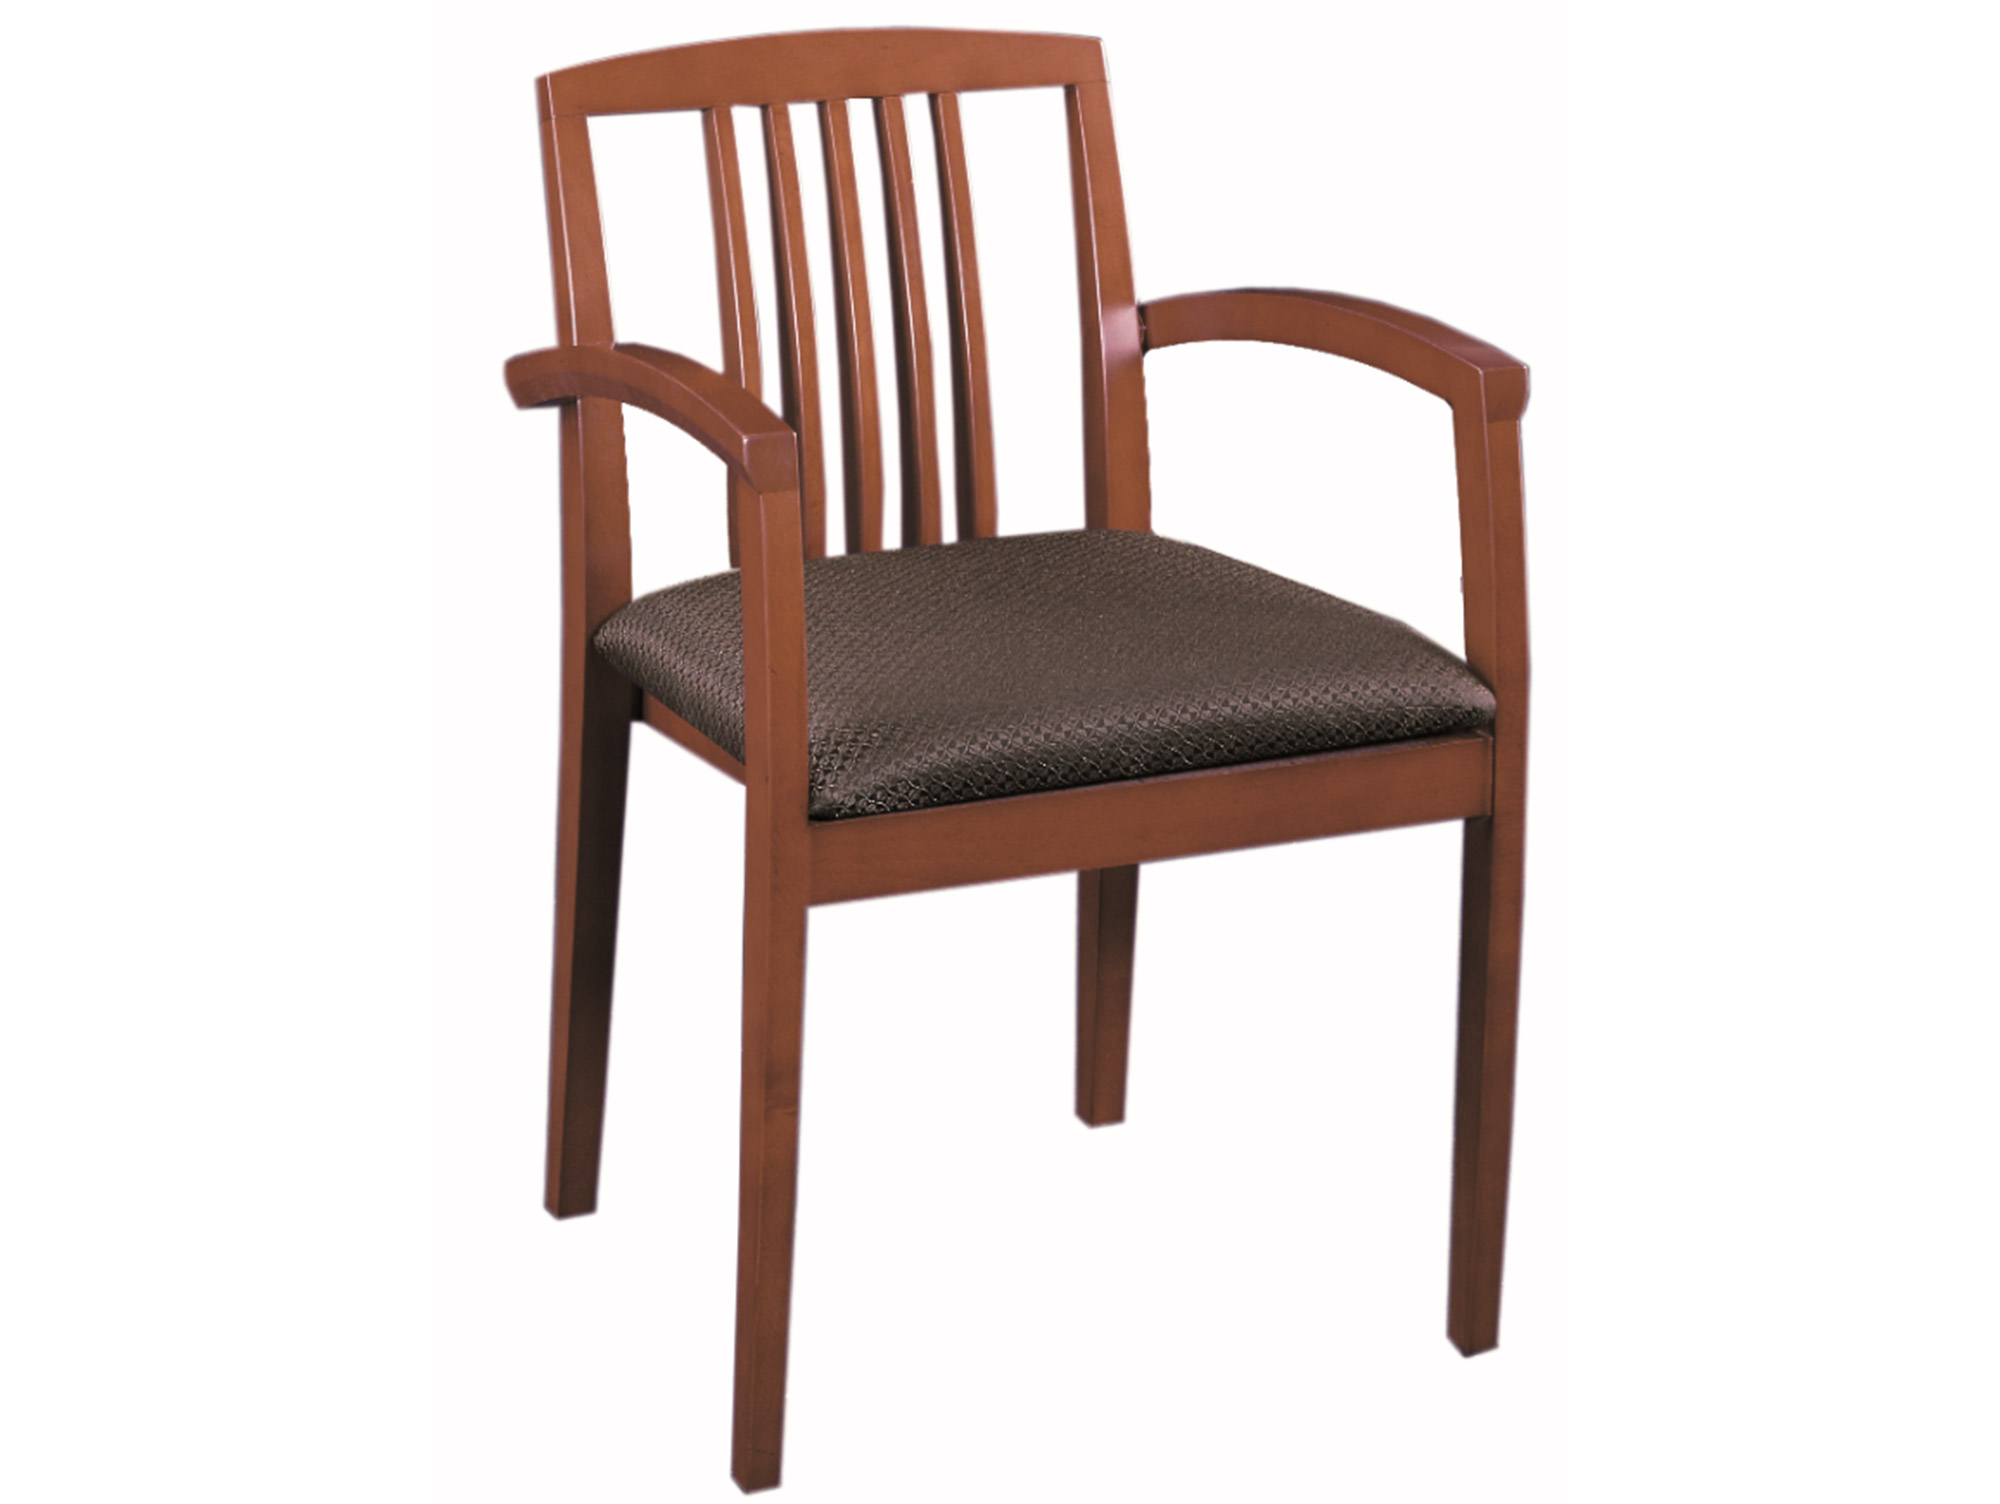 Chairs For Office #CHAIR-07-08-12-14